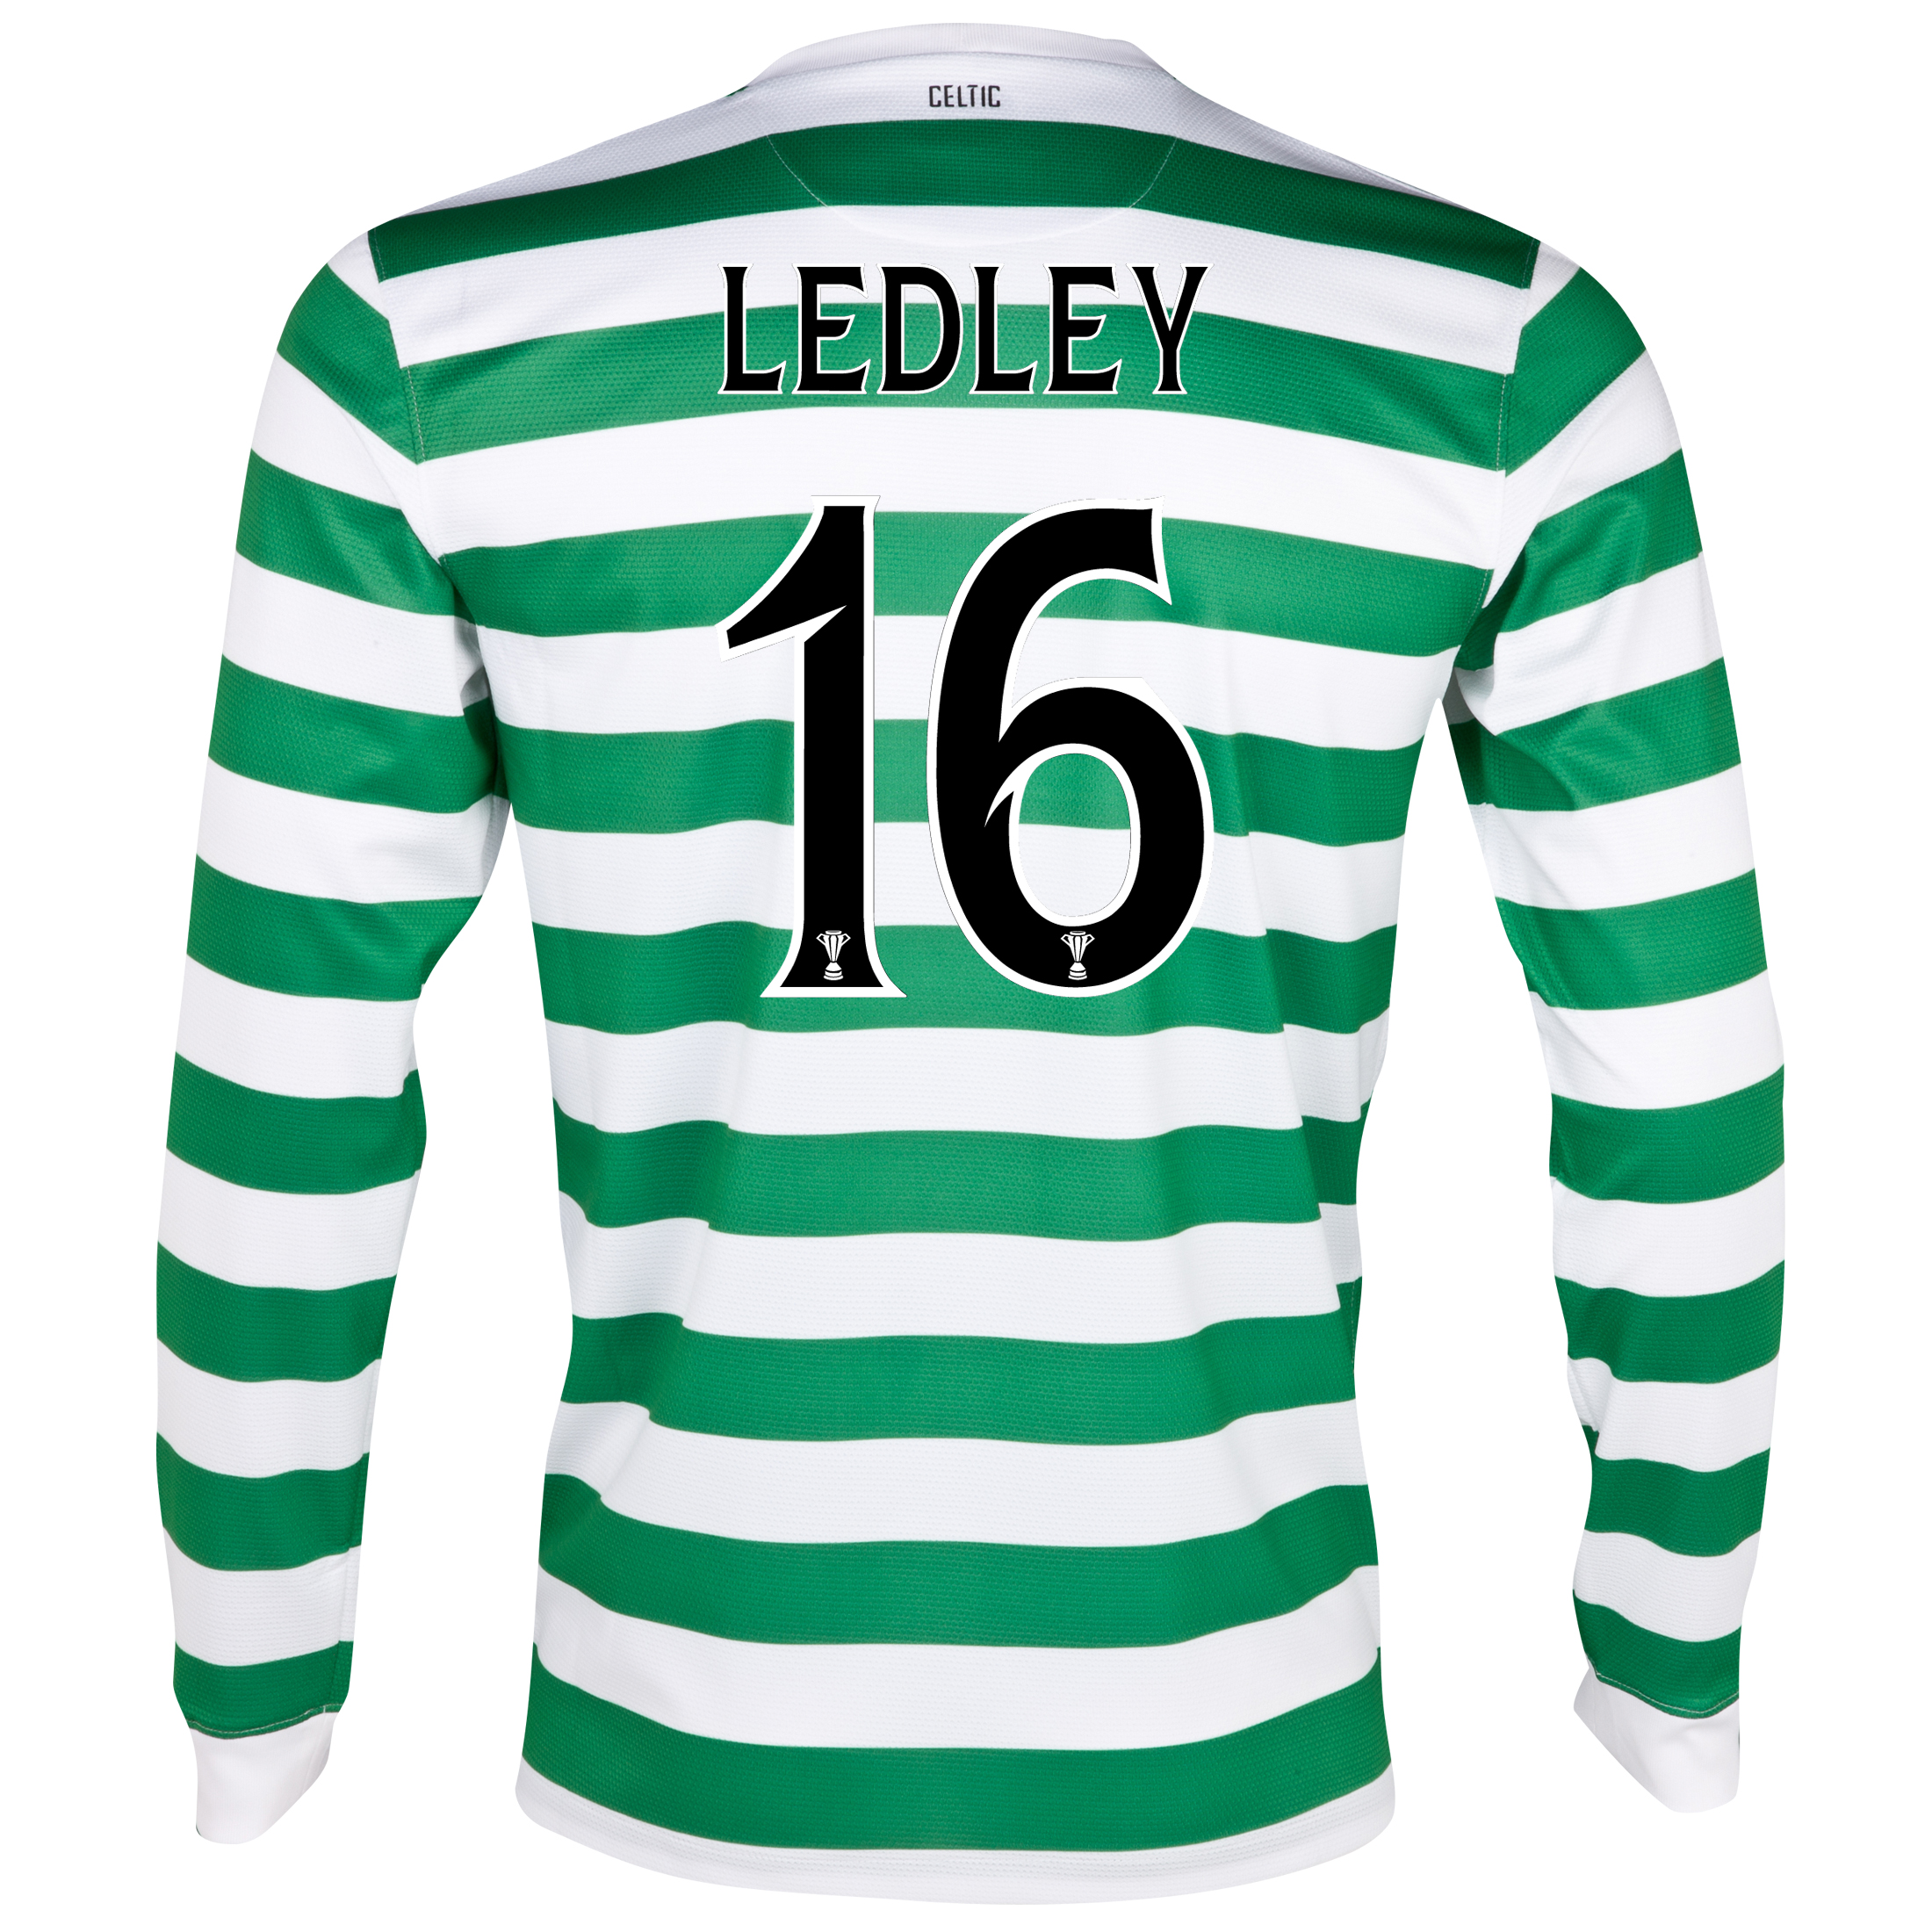 Celtic Home Shirt 2012/13 - Long Sleeved - No Sponsor with Ledley 16 printing